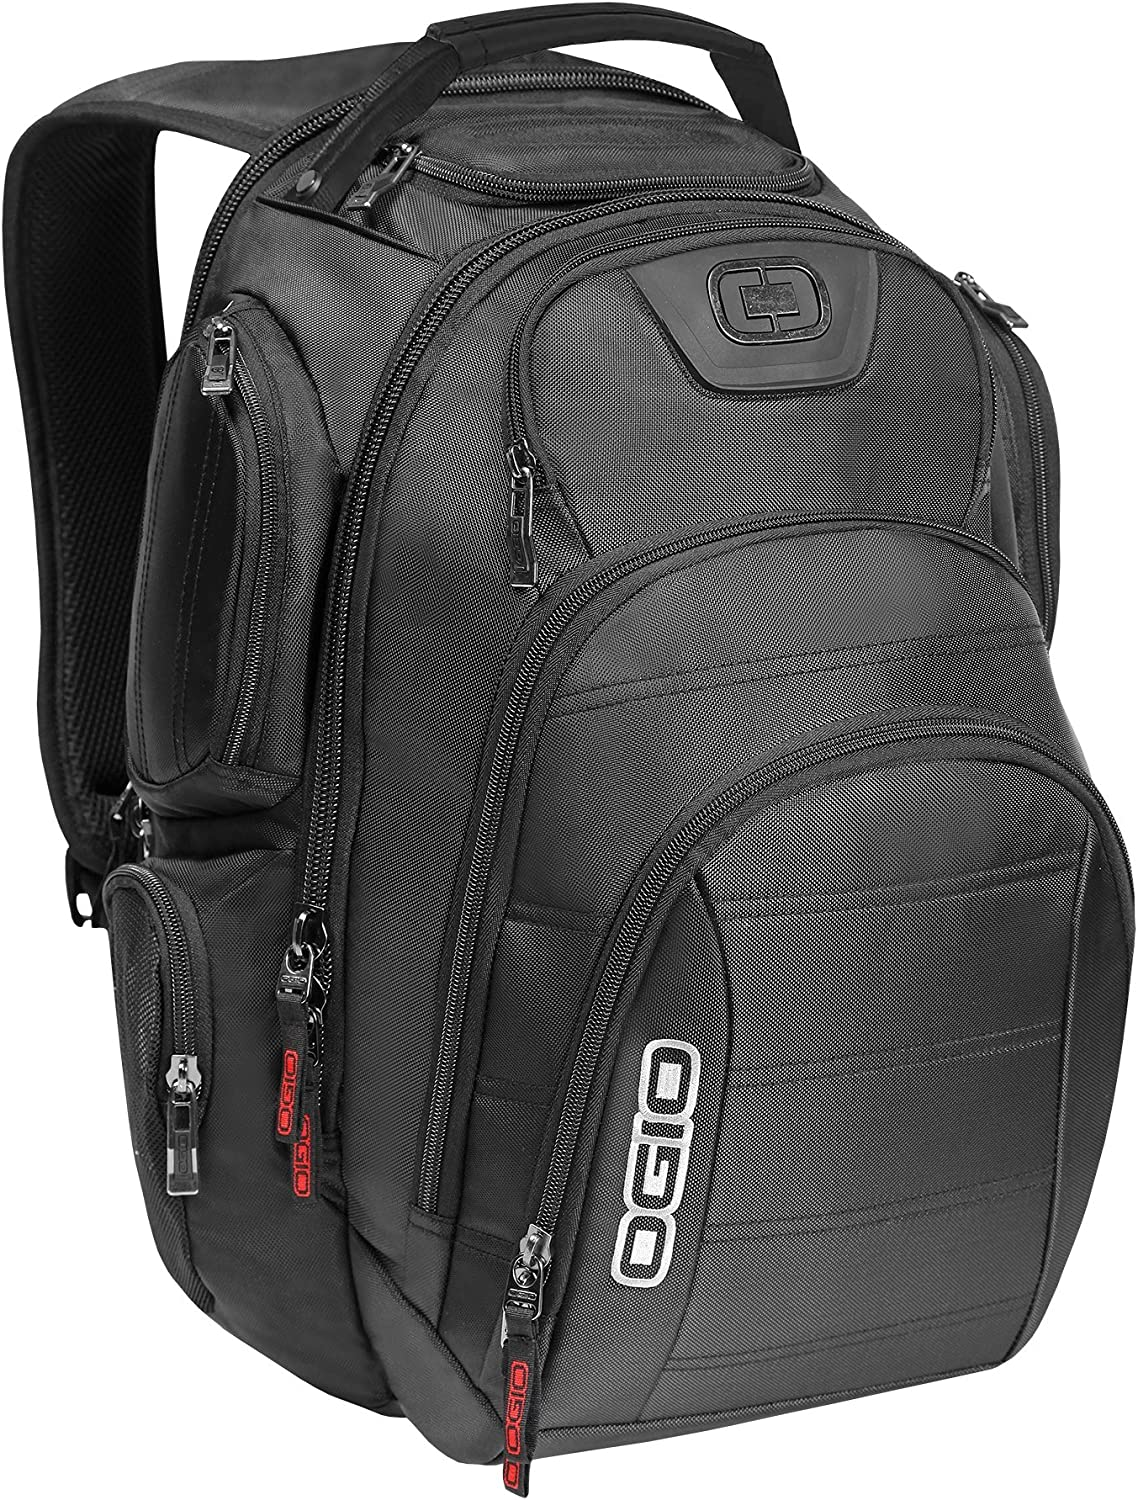 OGIO 5918037OG Black Rev Backpack